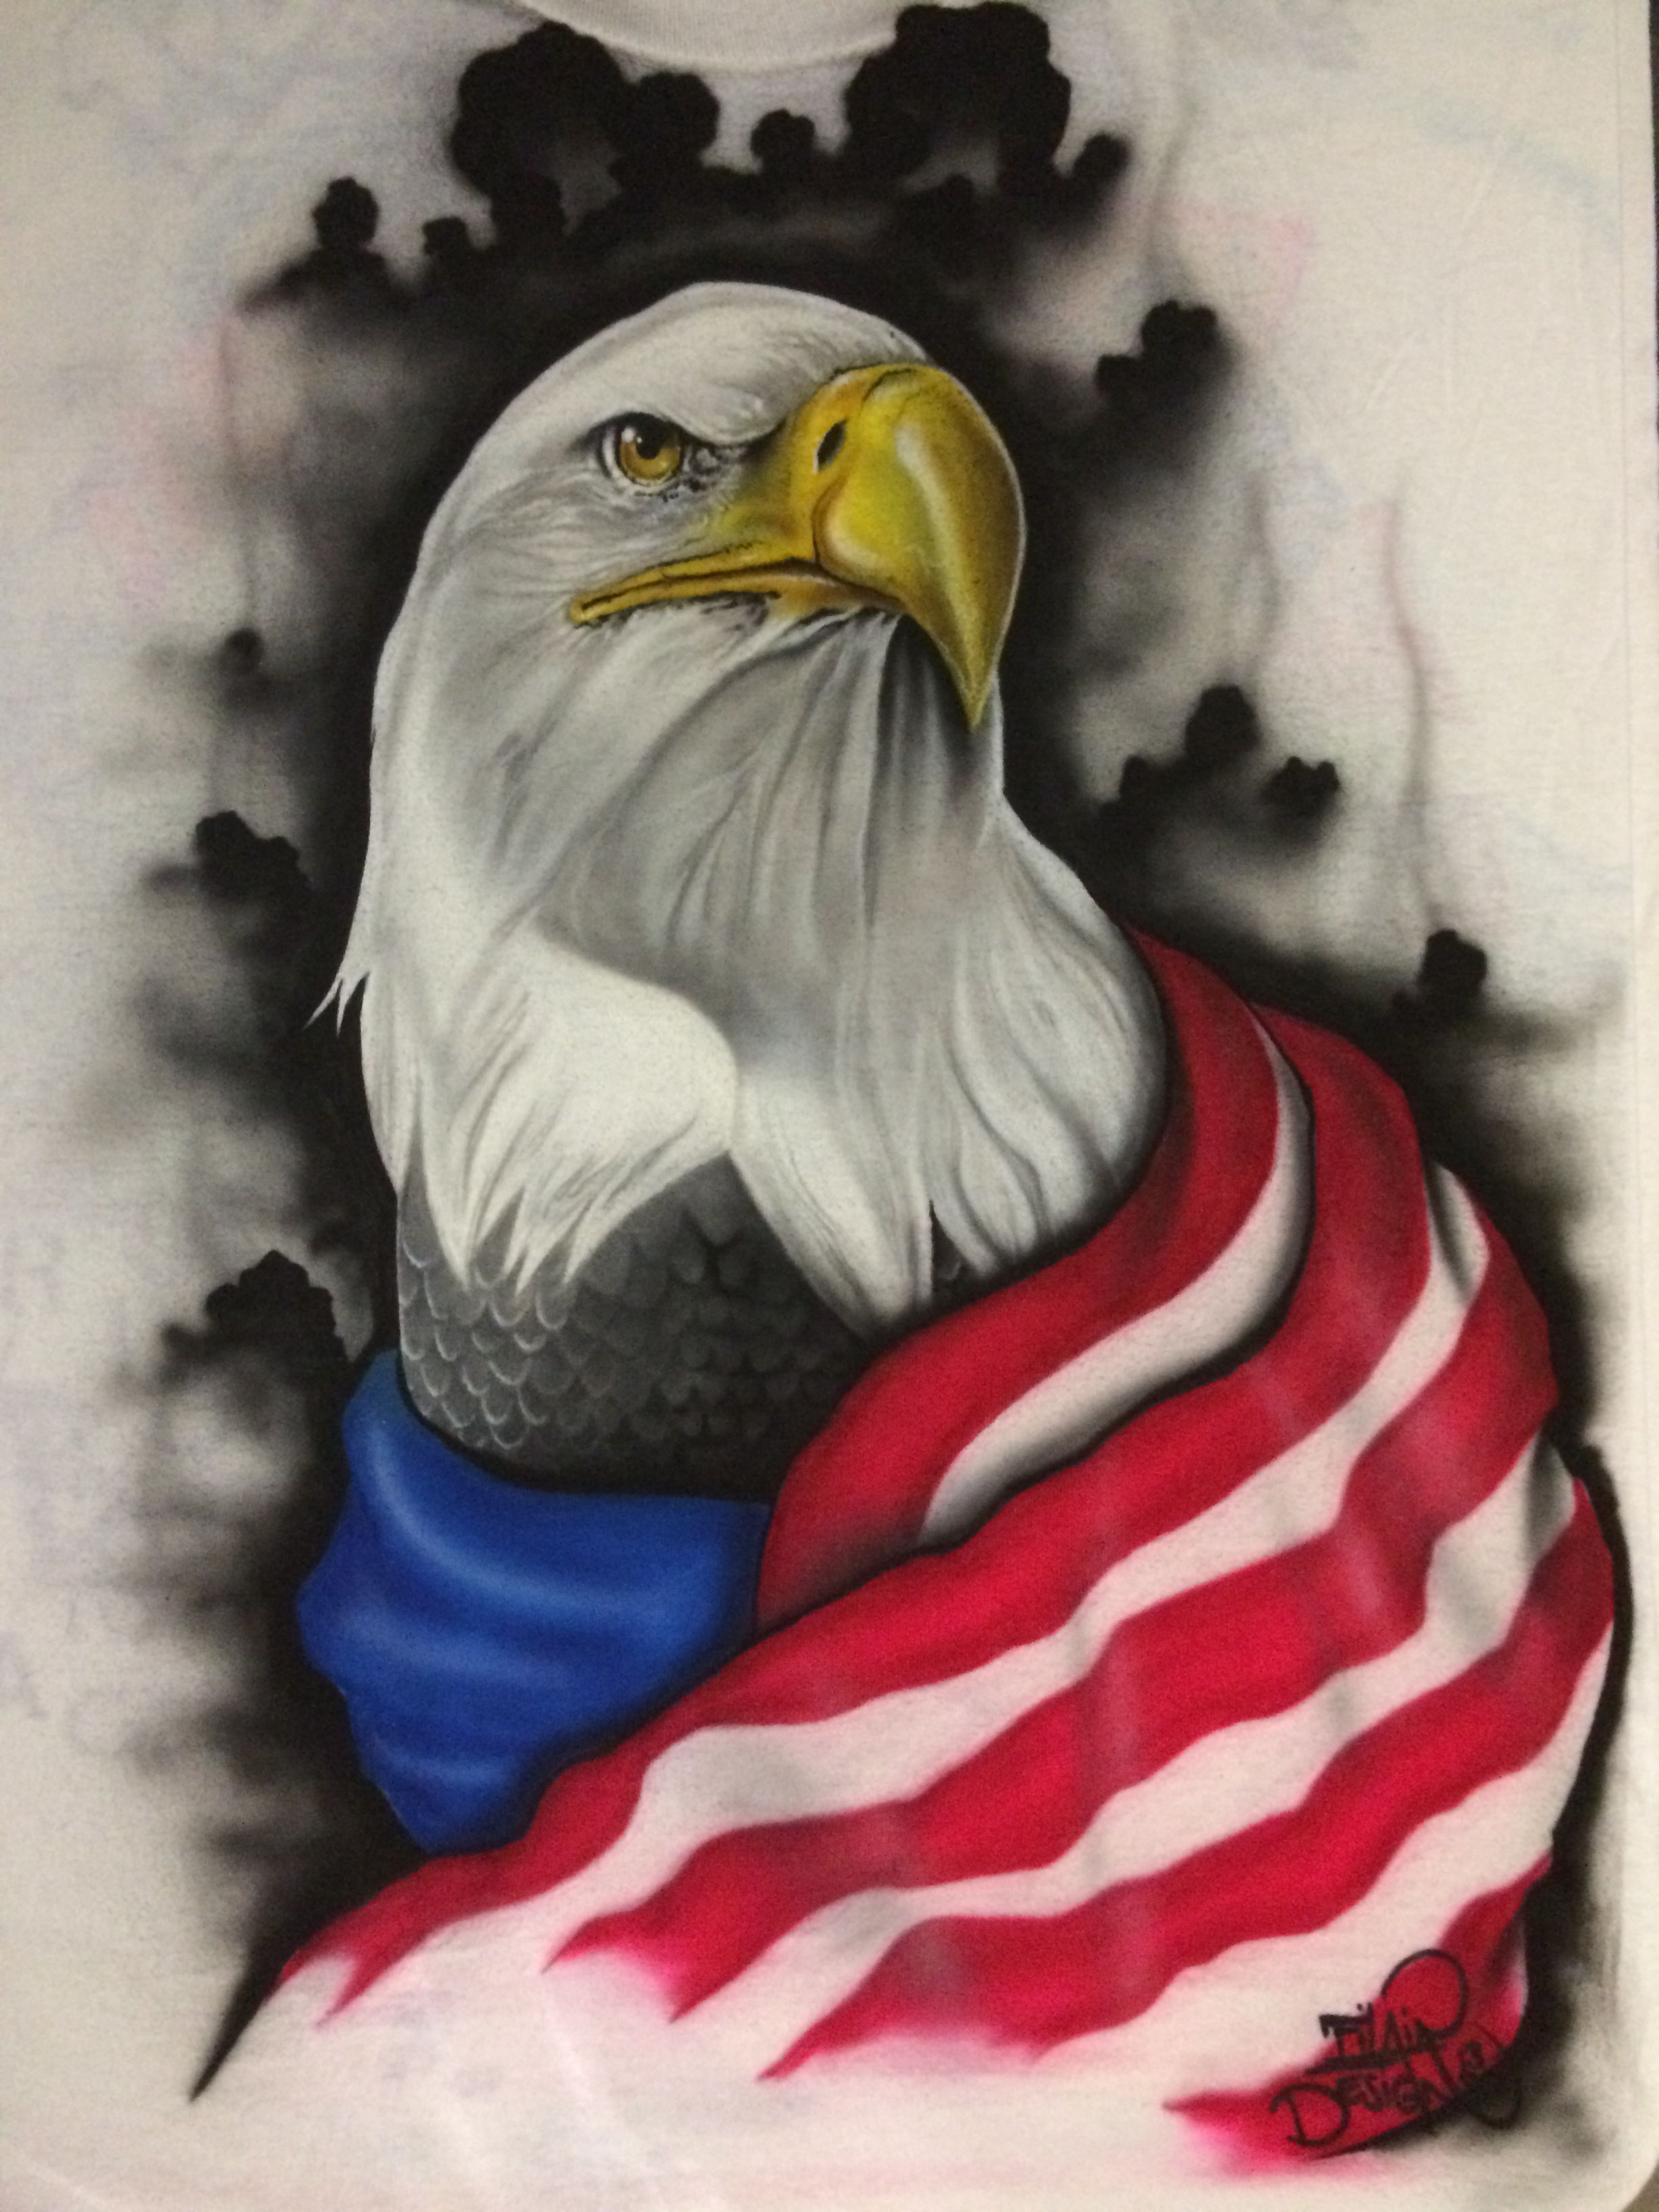 f9fba9dc806d Bald Eagle Airbrushed on a T-shirt